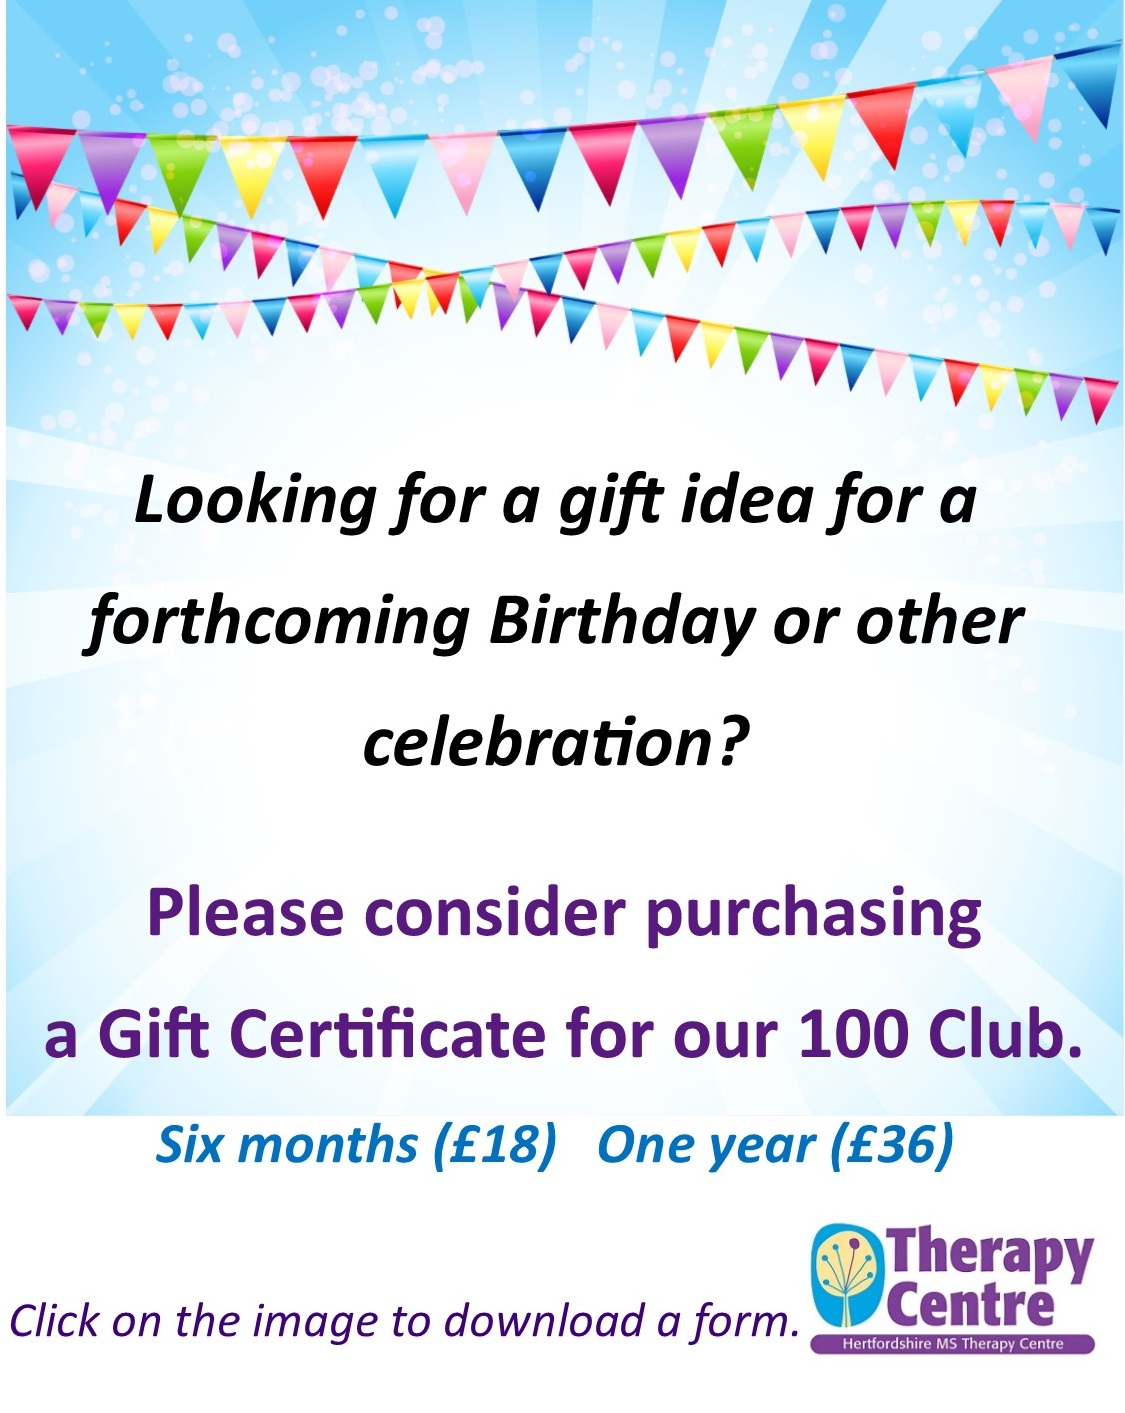 100 Club Gift Cert image for web and email